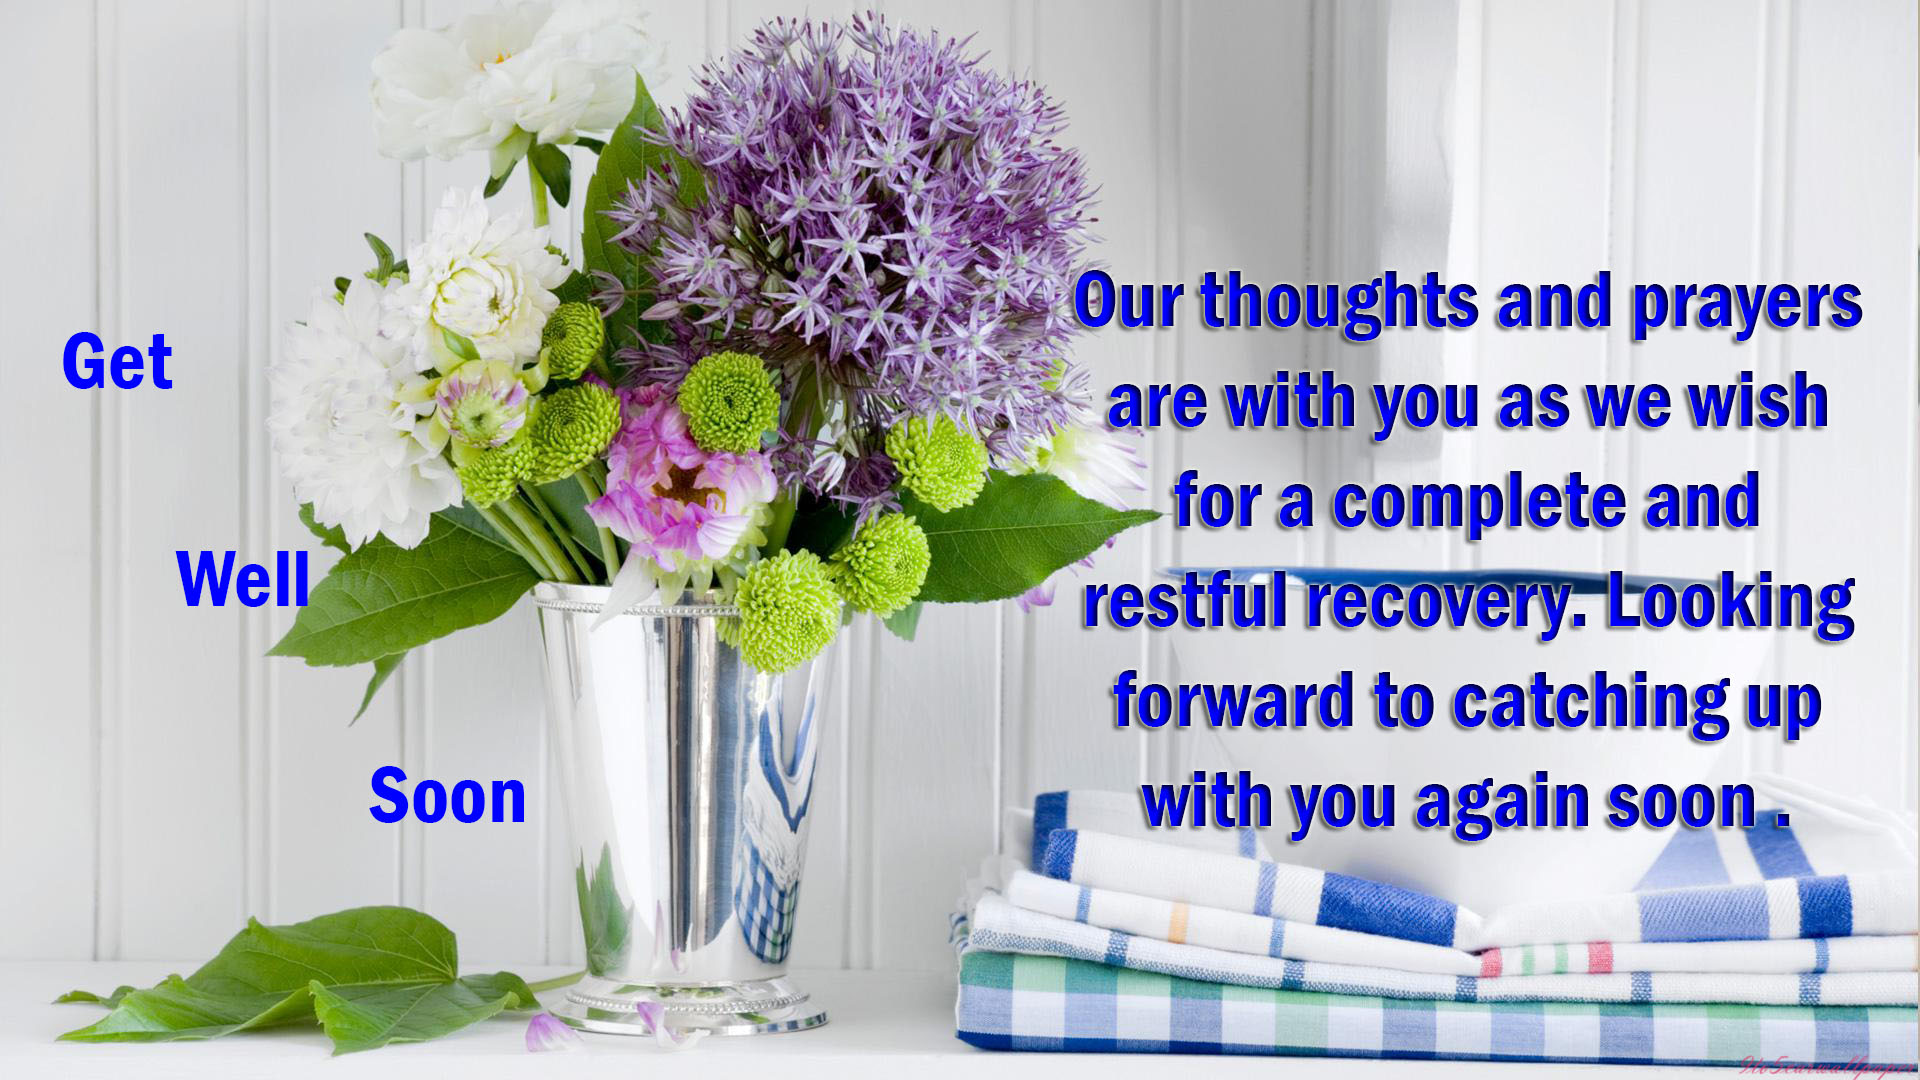 Get Well Soon Quotes & Wishes 2018 - My Site